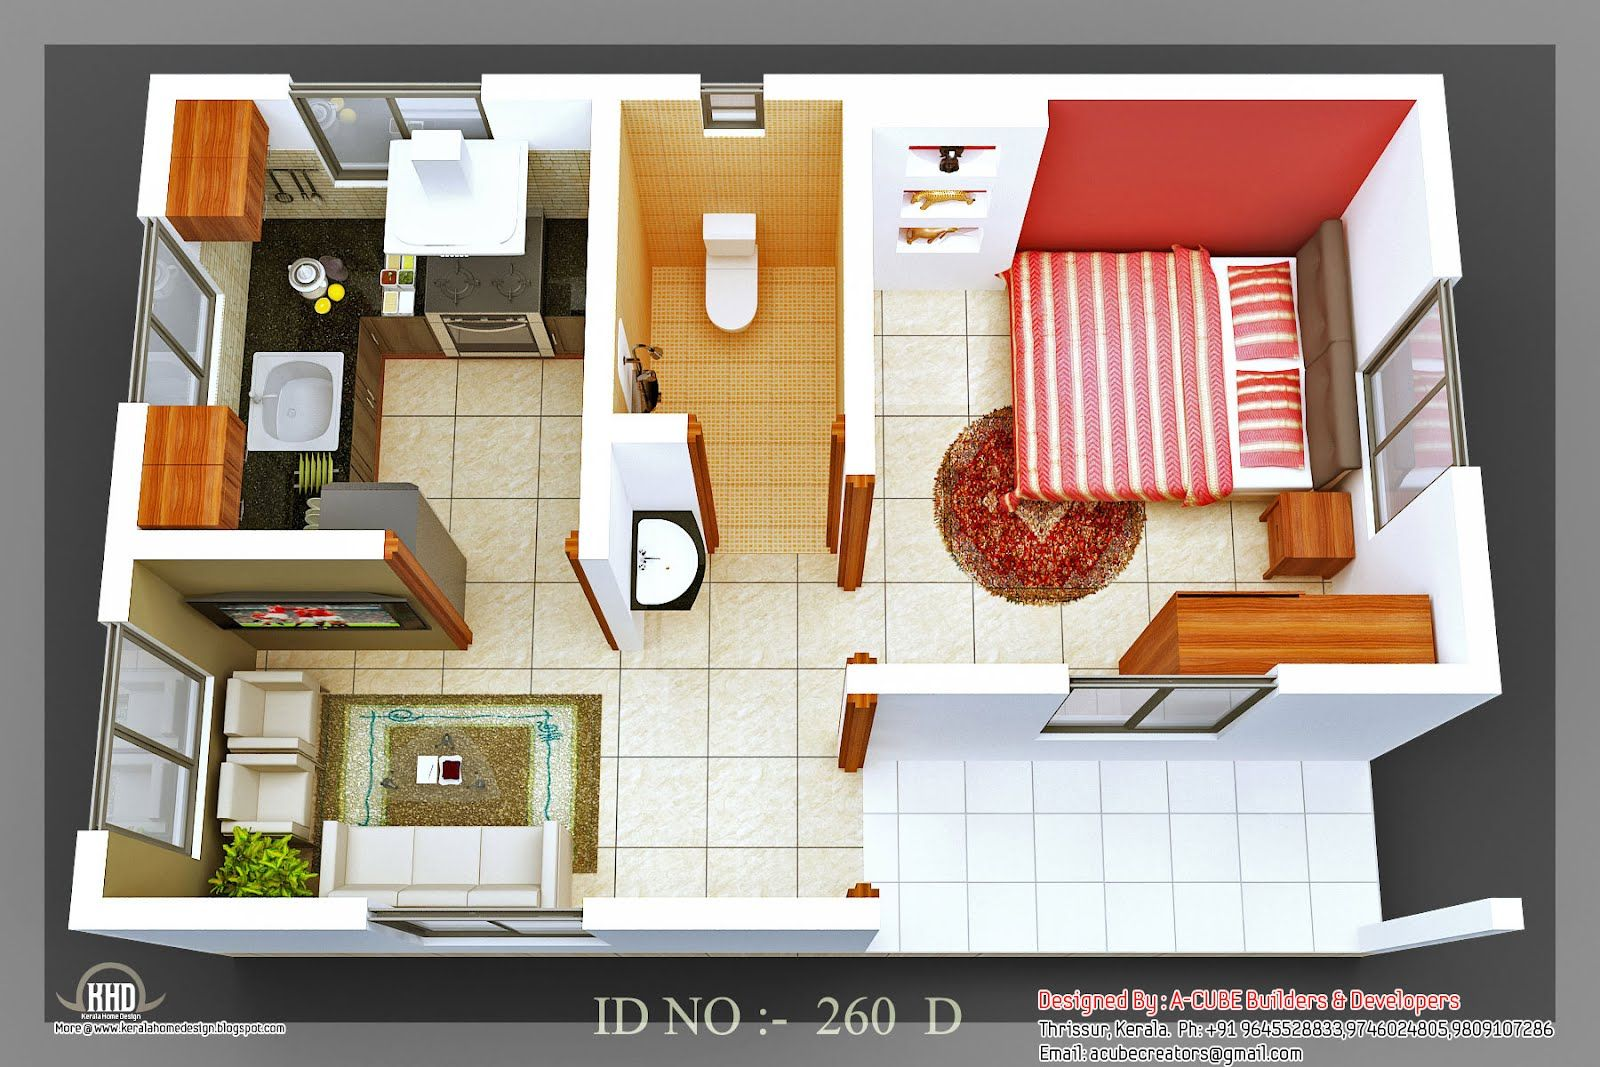 Isometric Views Small House Plans Taste Heaven Tweet March